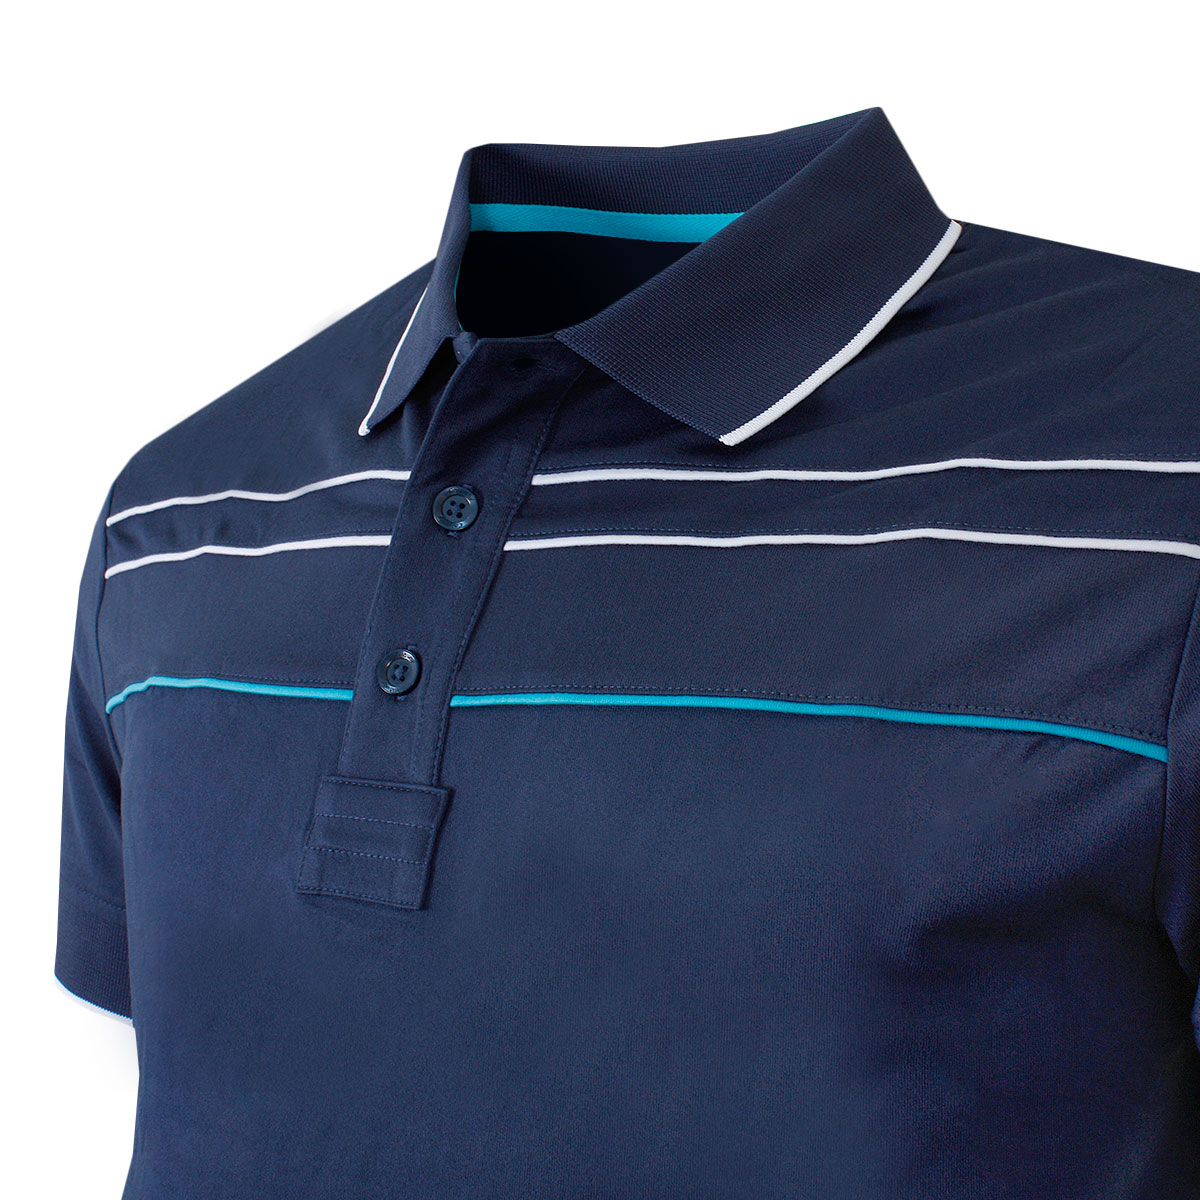 Callaway-Golf-Mens-X-Range-Stretch-Chest-Piped-Polo-Shirt-60-OFF-RRP thumbnail 10